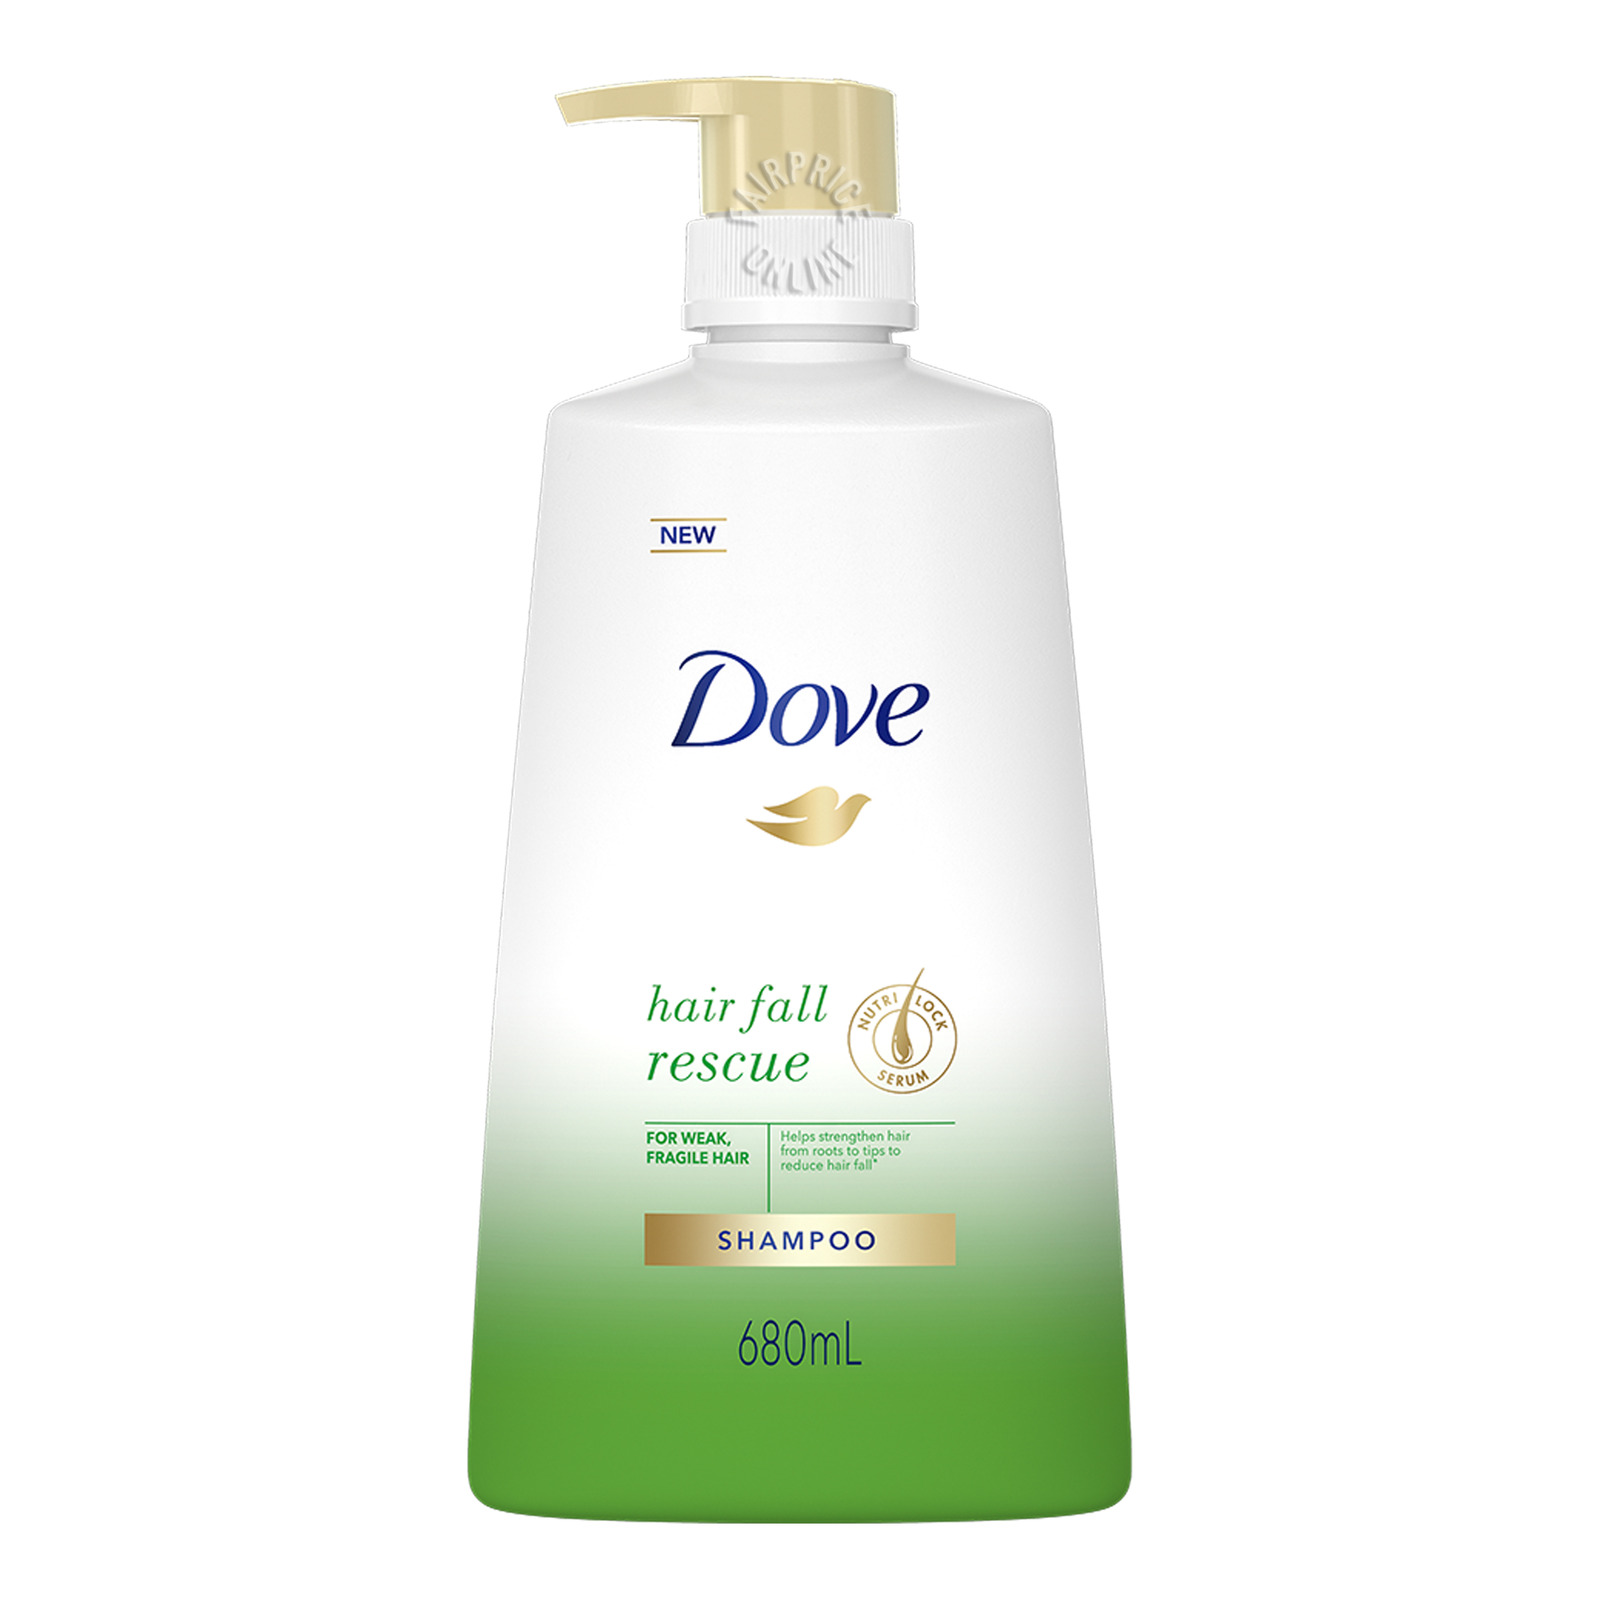 Dove Shampoo - Hair Fall Rescue